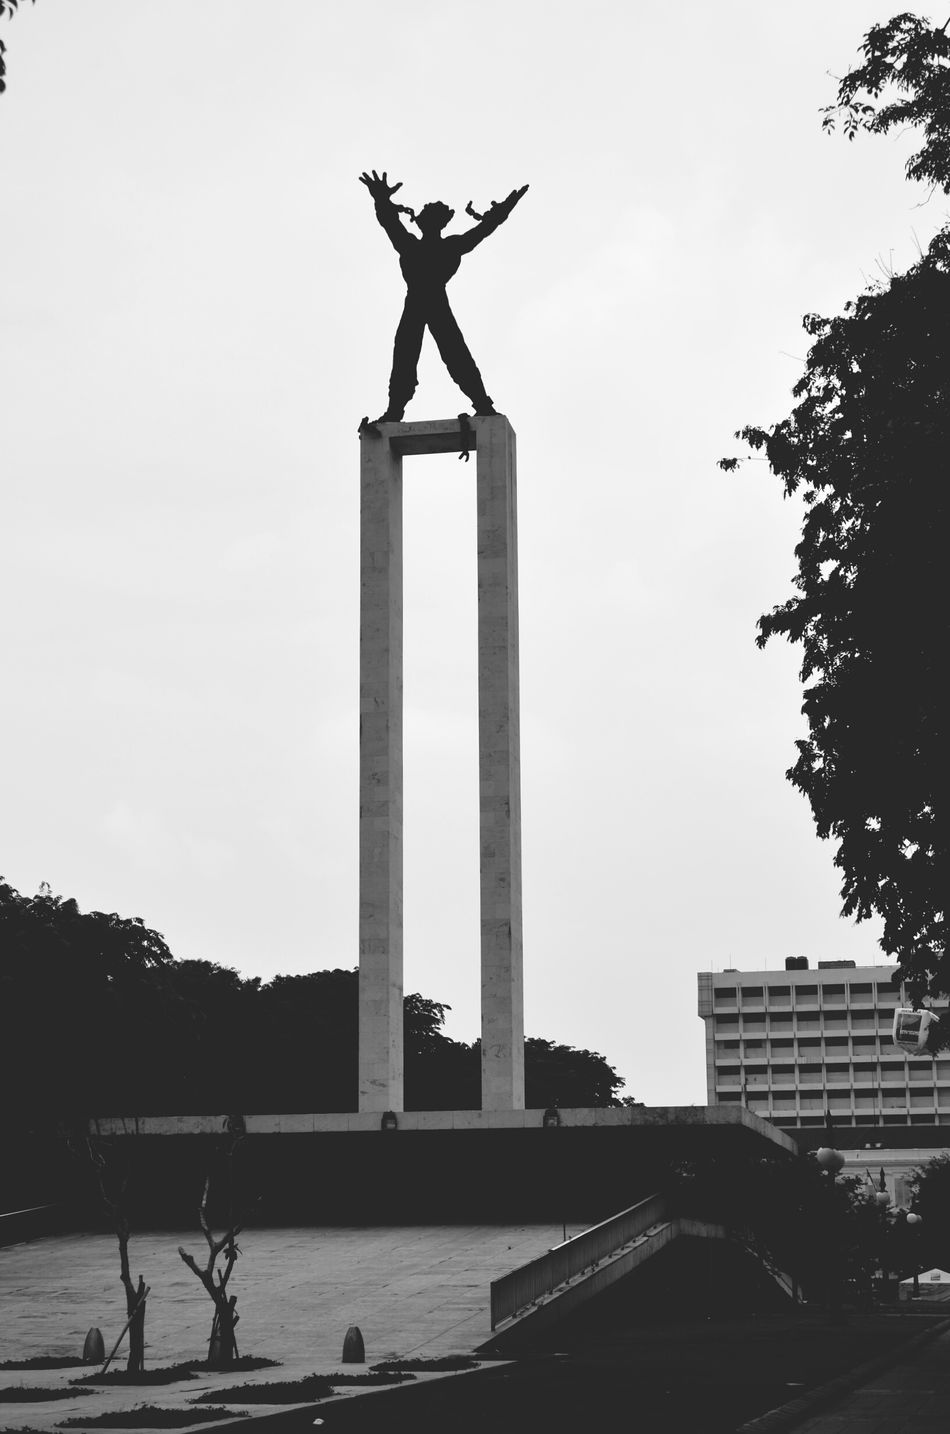 The Pembebasan Irian Barat monument representing freedom from Dutch colonialism Monument Irian Barat Jakarta INDONESIA Travel Backpacking Freedom Colonialism